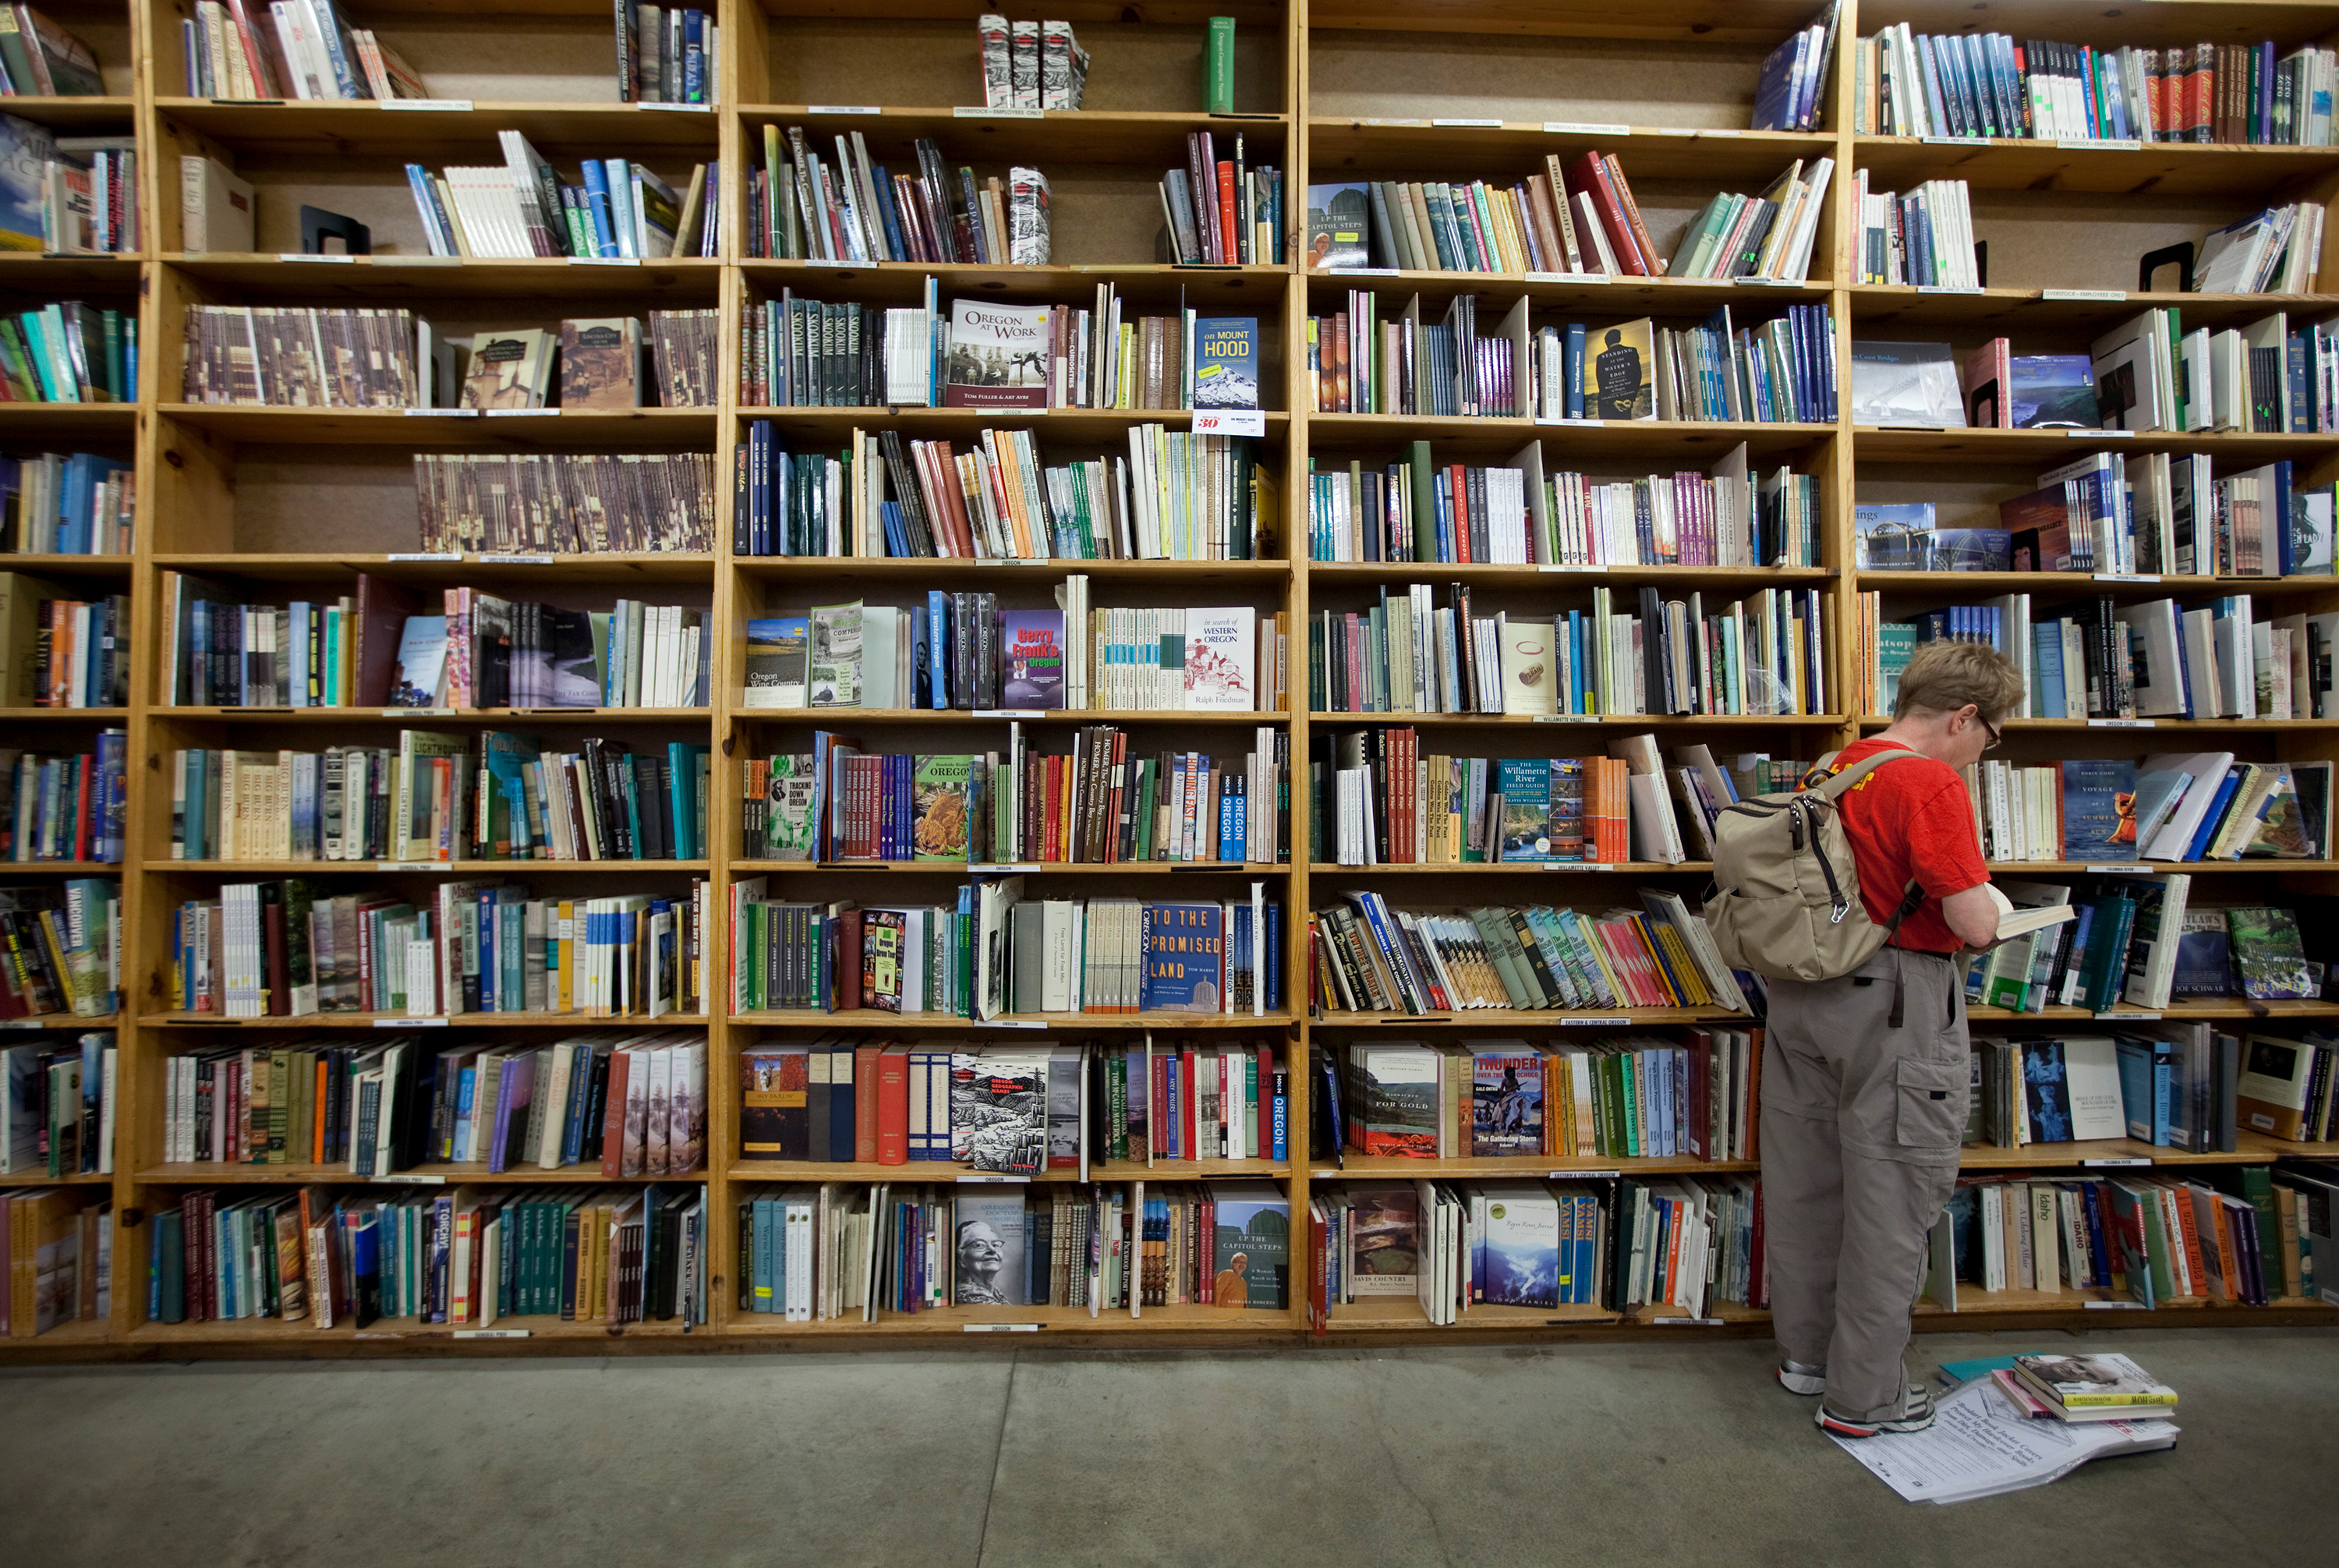 Portland's iconic Powell's Books rehires 100 laid-off workers to meet online surge in orders